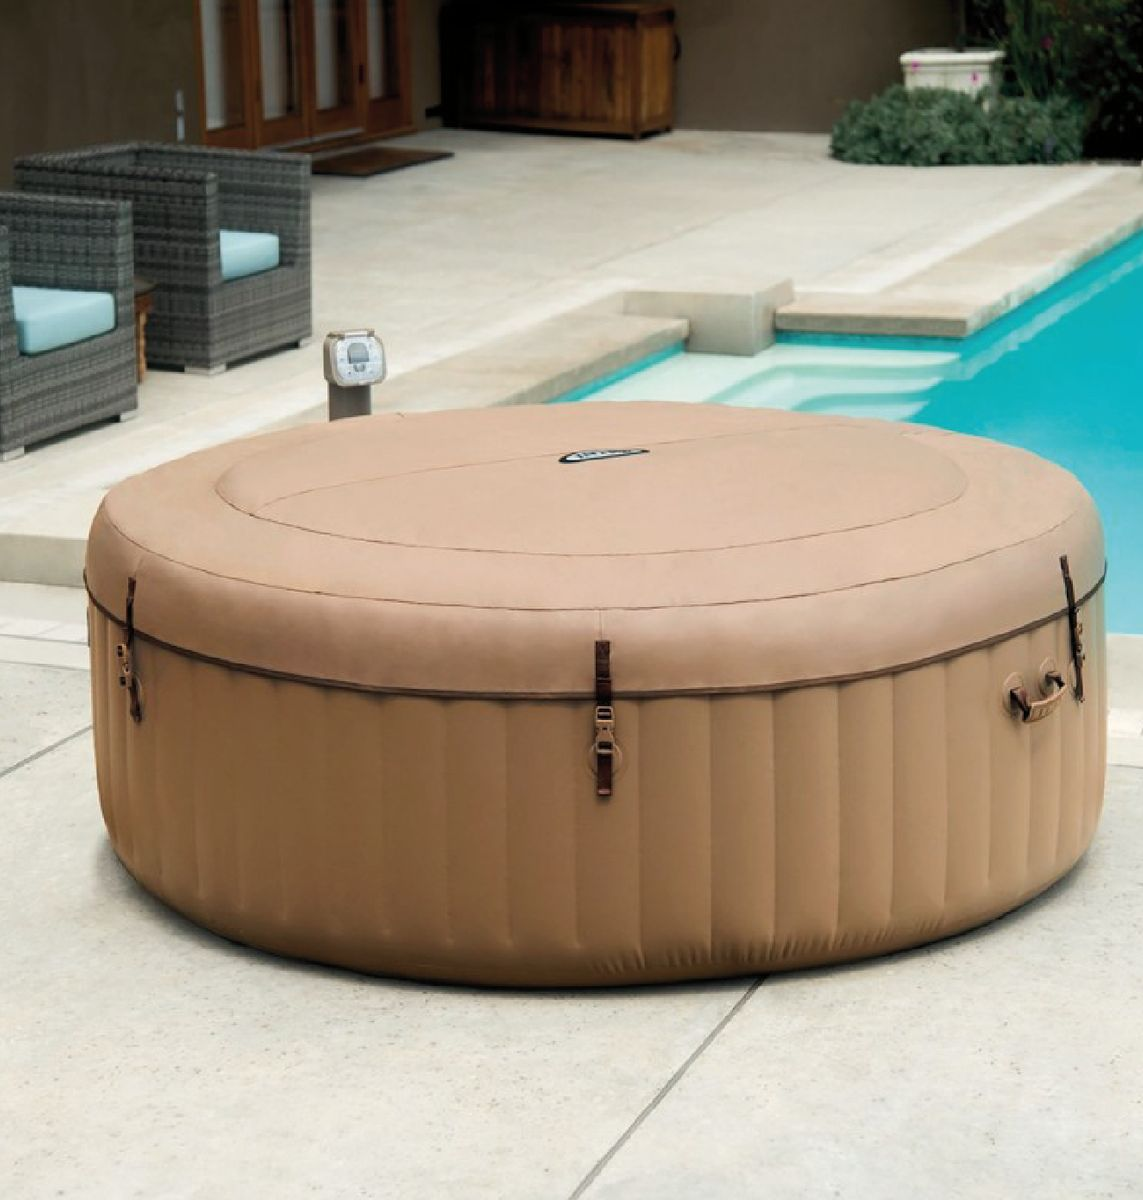 SPA GONFLABLE INTEX PURESPA ROND 4pl. BULLES BEIGE